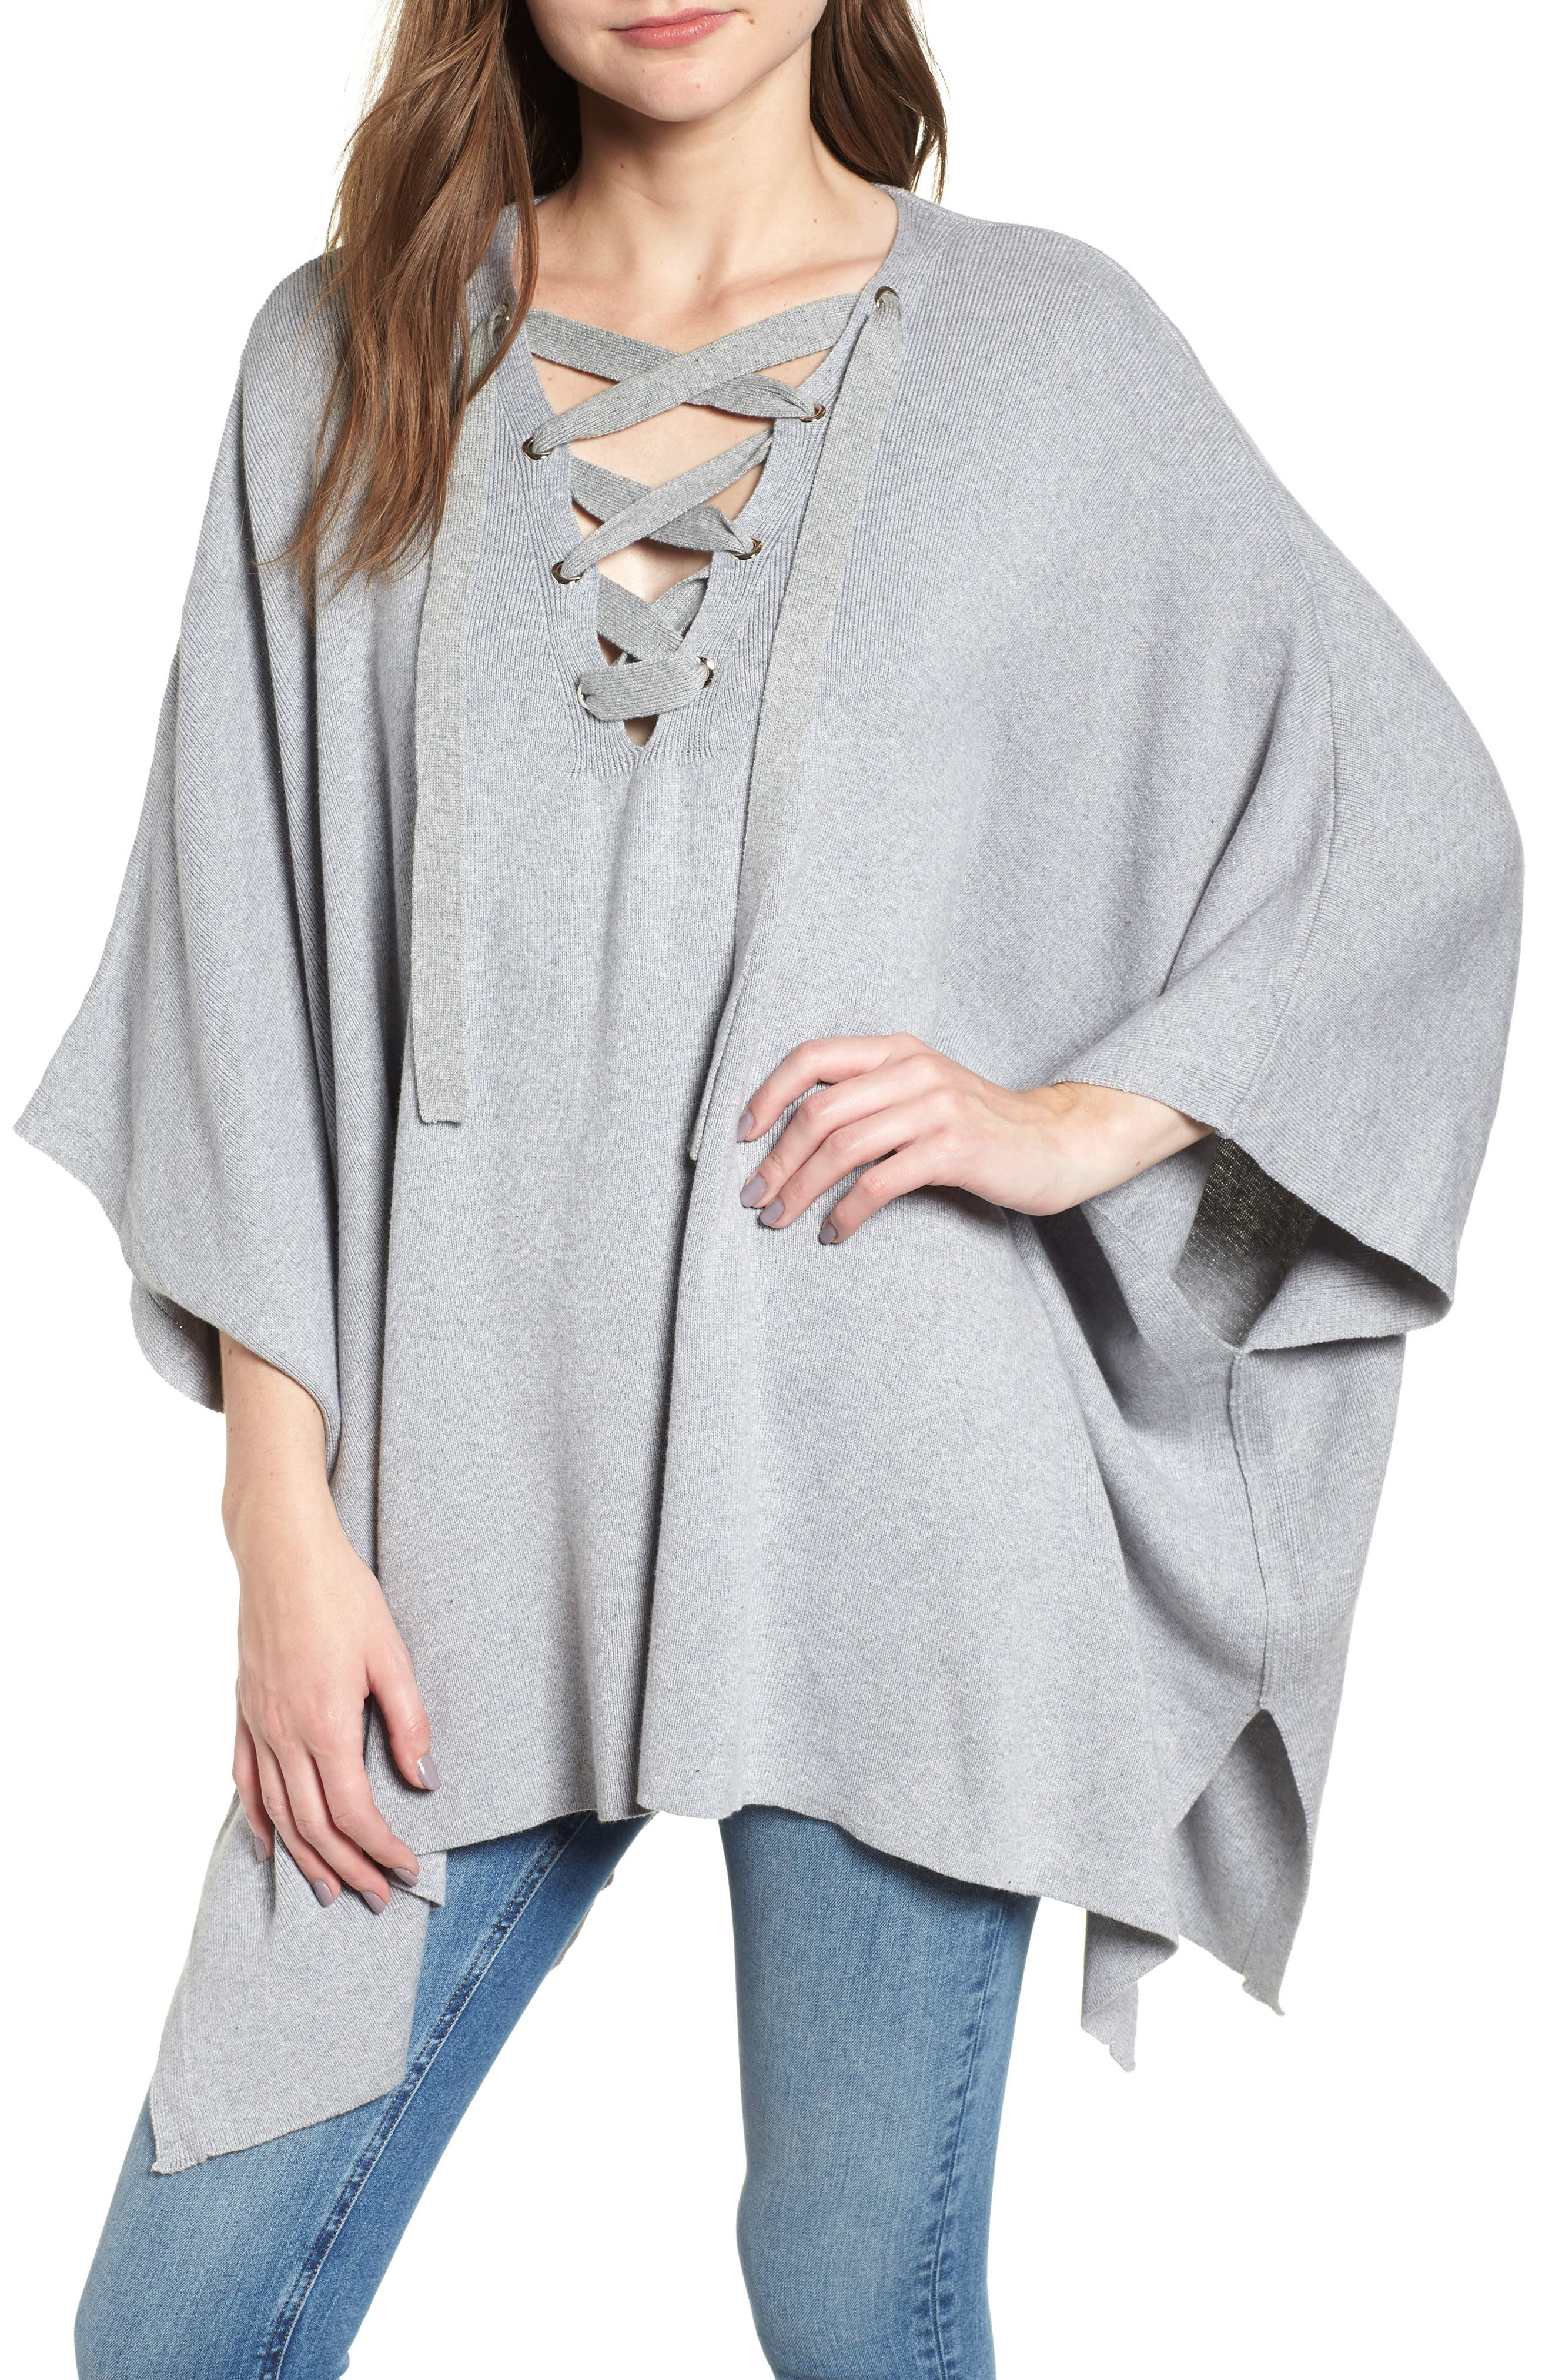 Bishop + Young Harper Lace-Up Poncho,                             Main thumbnail 1, color,                             035